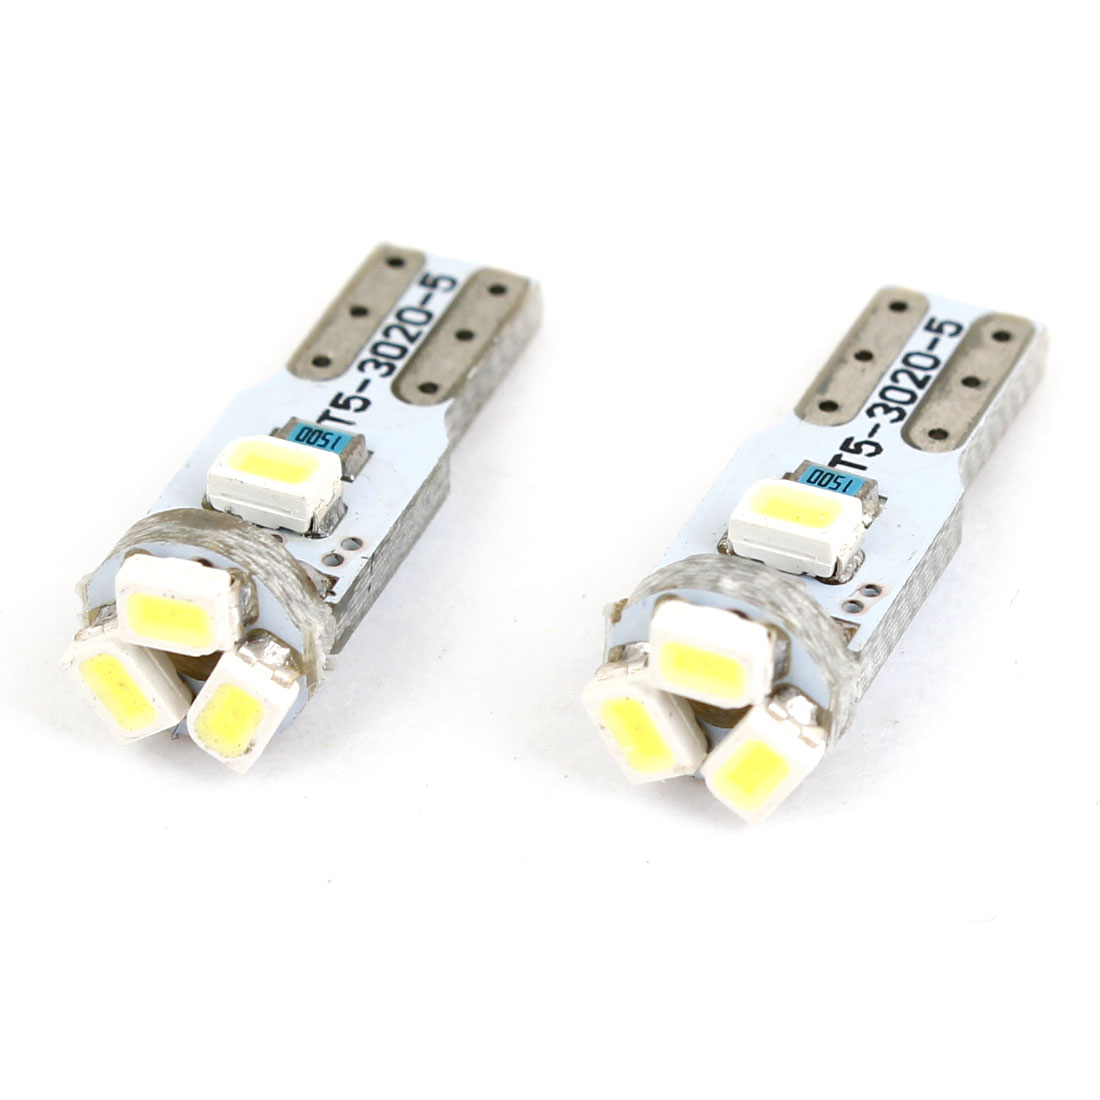 T5 1206 SMD 5 LED White Lamp Dashboard Light Bulb 2 Pcs for Car